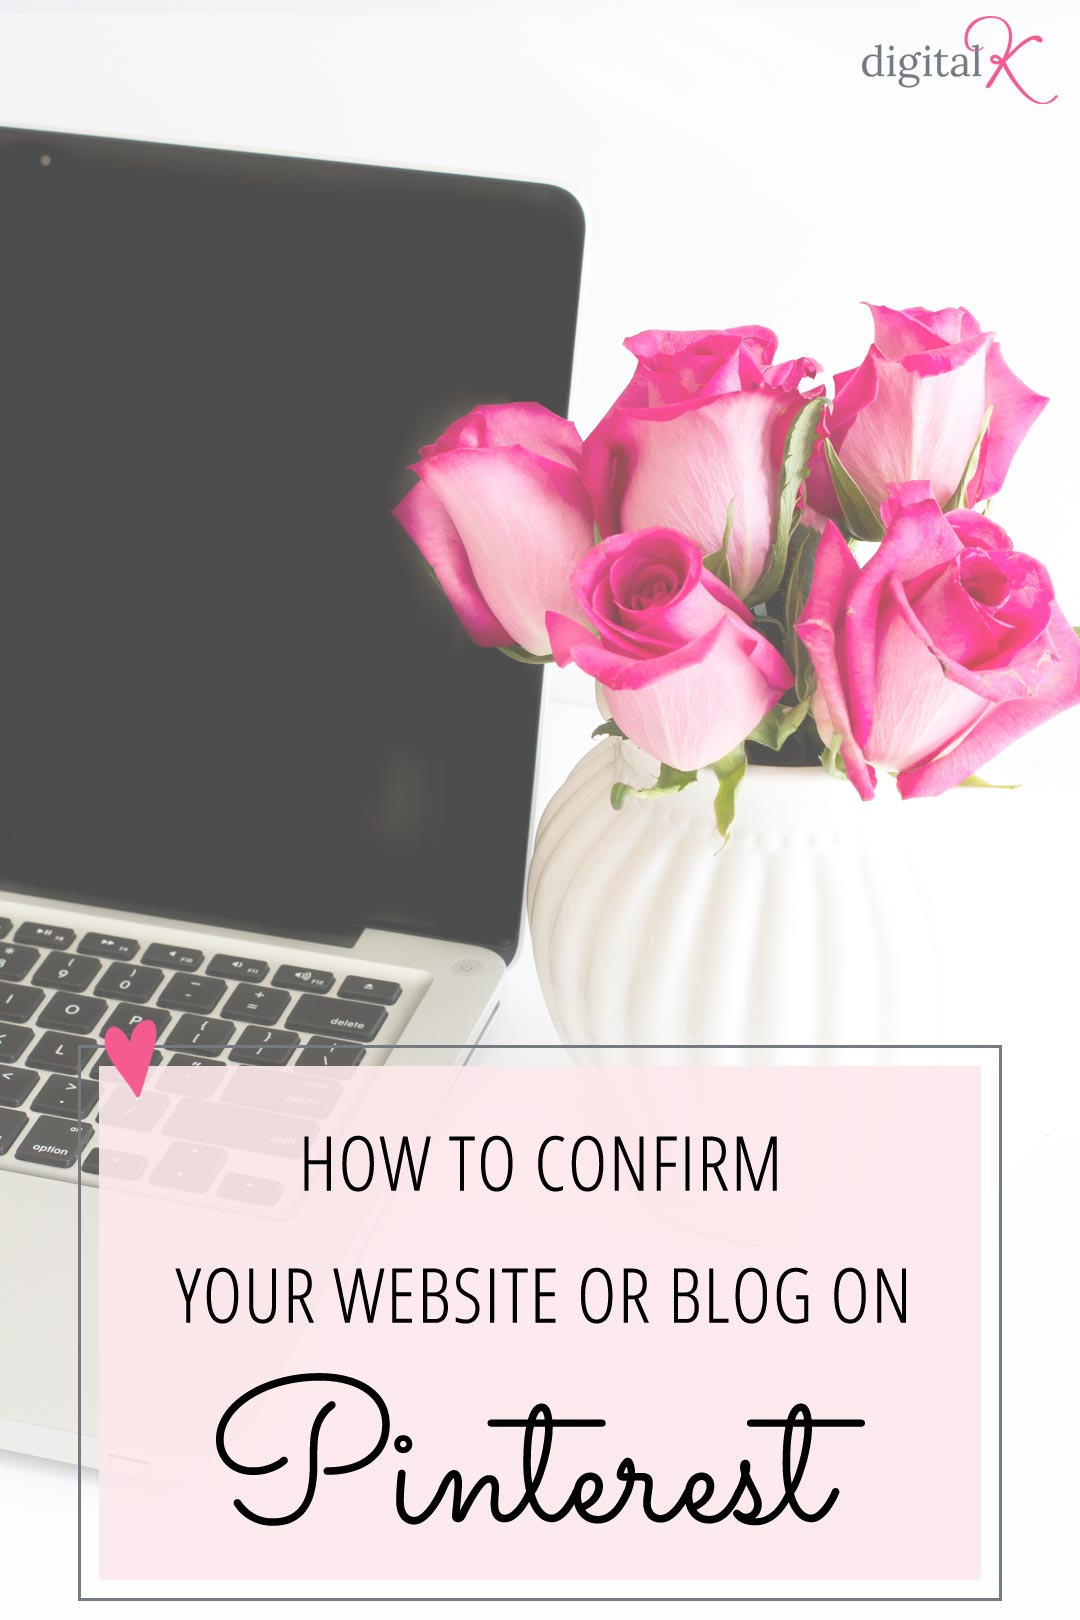 Follow these easy. step-by-step instructions on how to confirm your website on Pinterest - so you get access to Pinterest analytics and better credibility!!